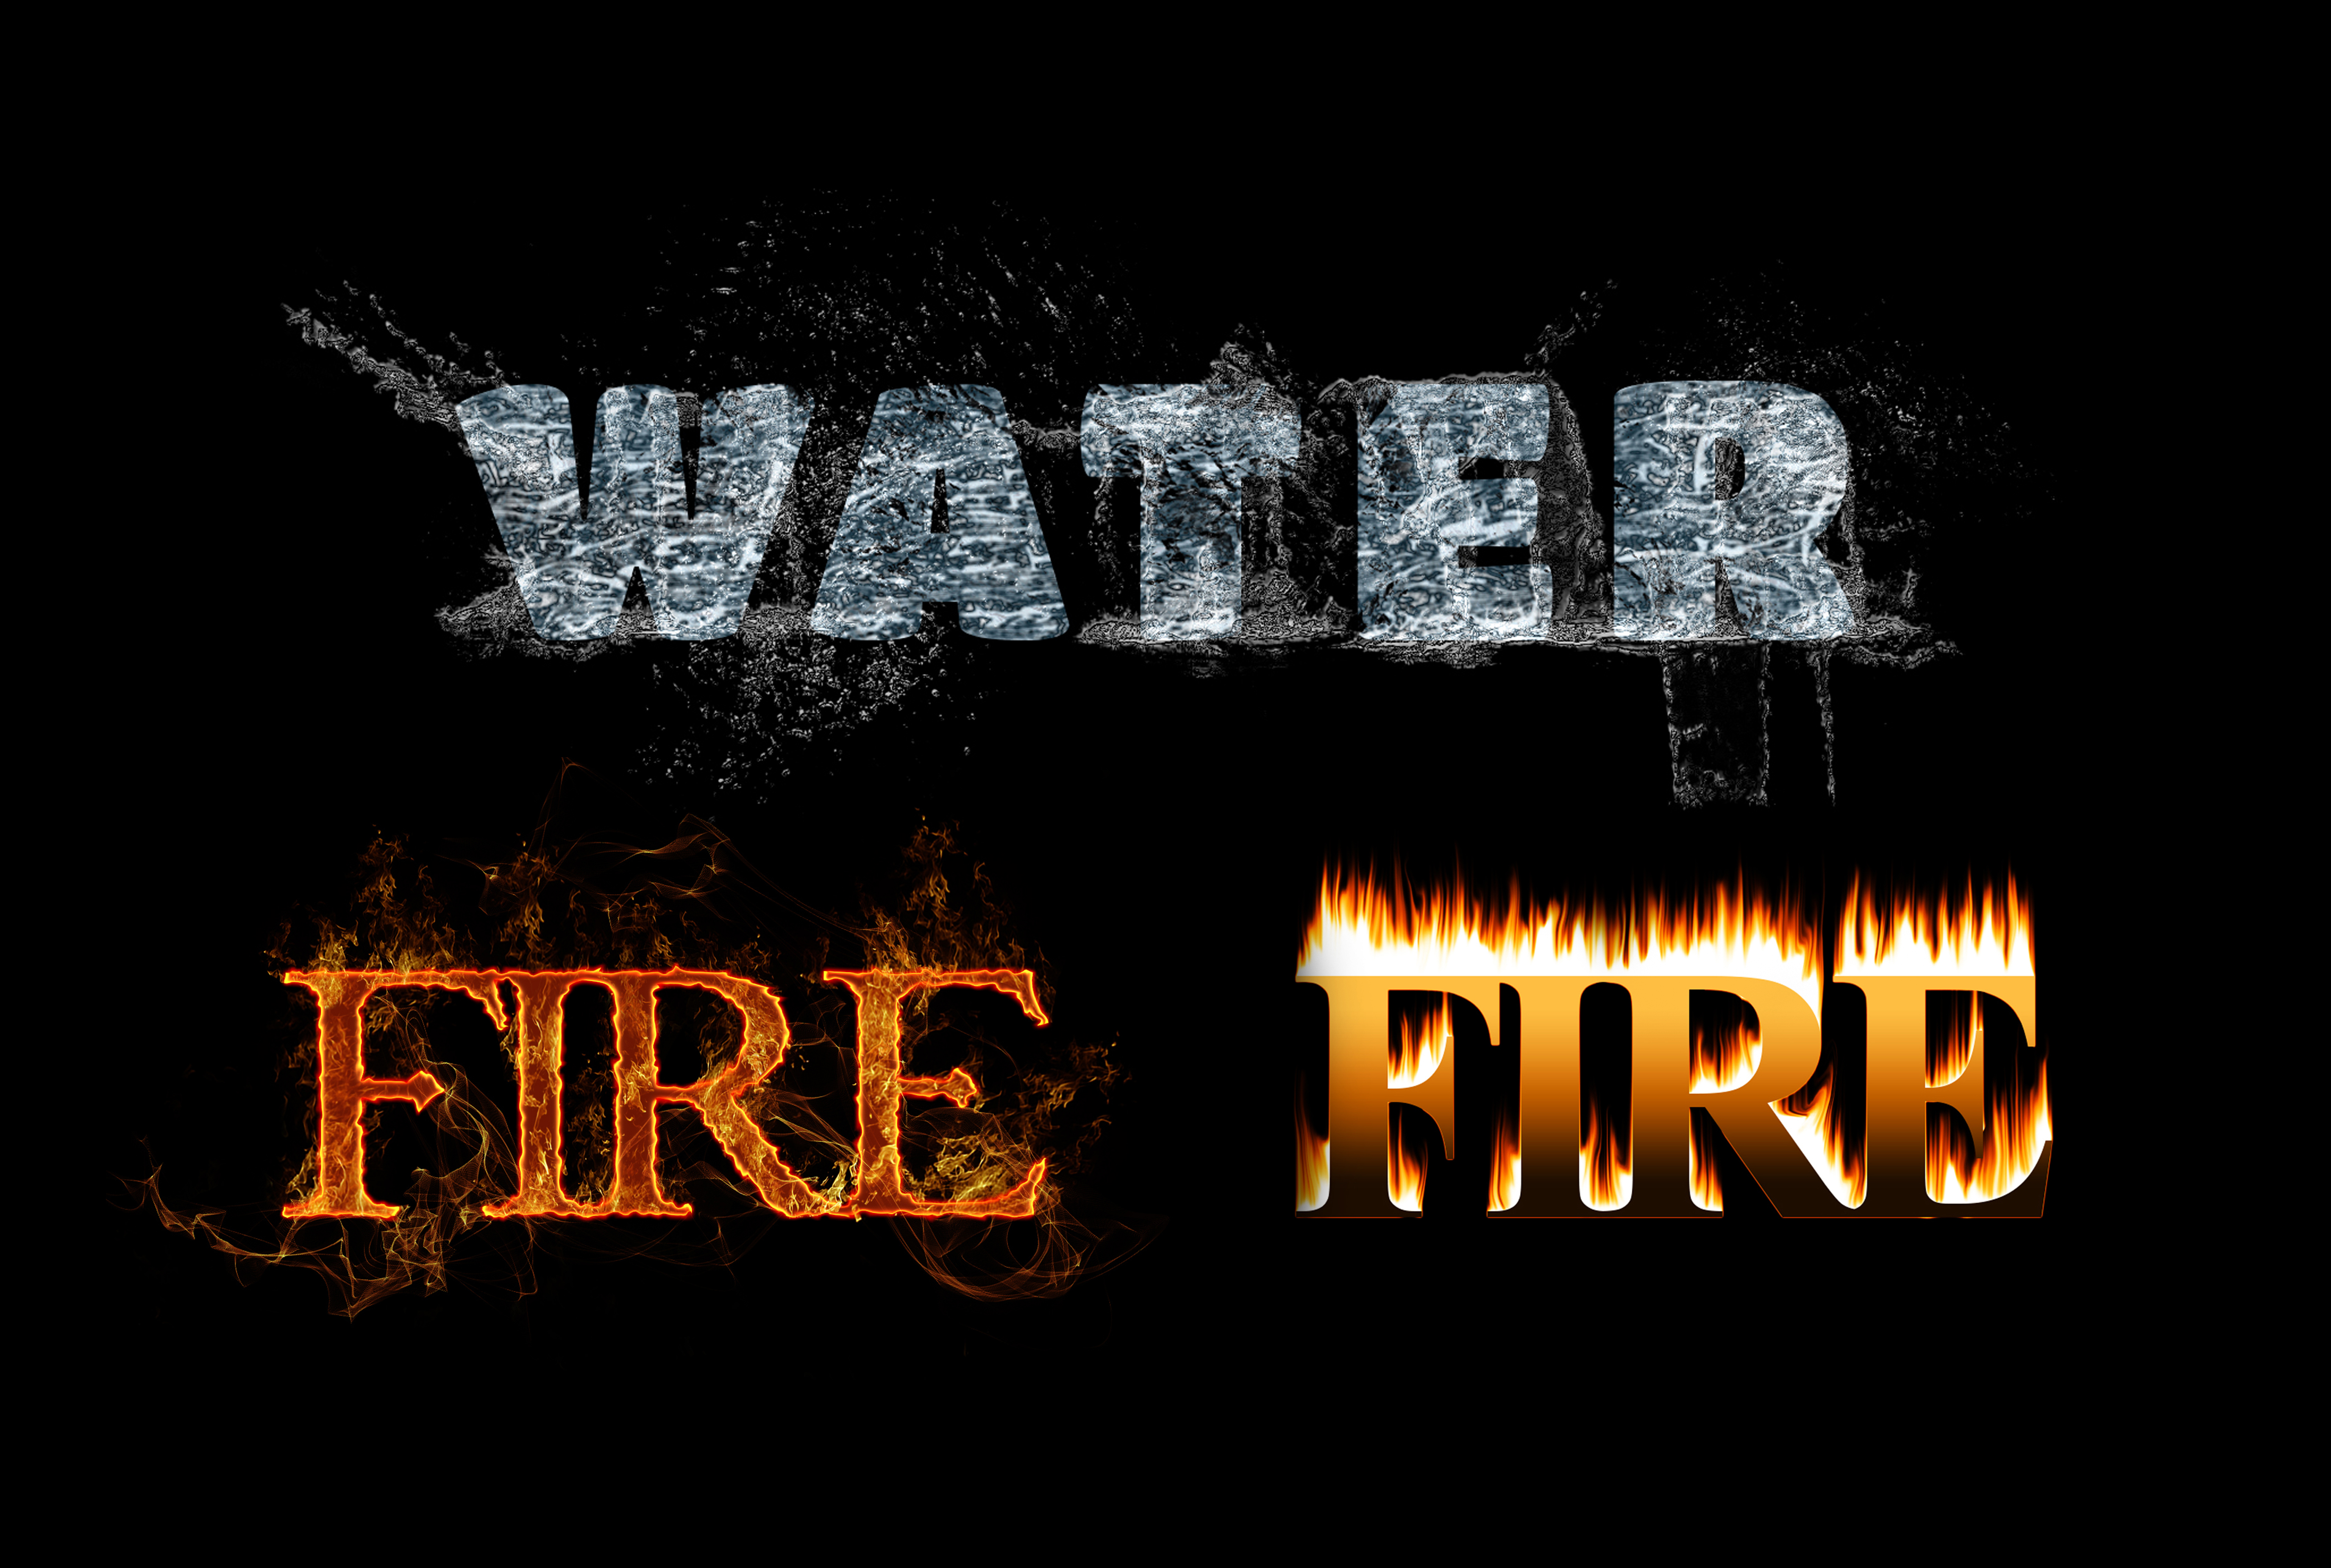 I will create text effects like fire flame text effect,  water text effect